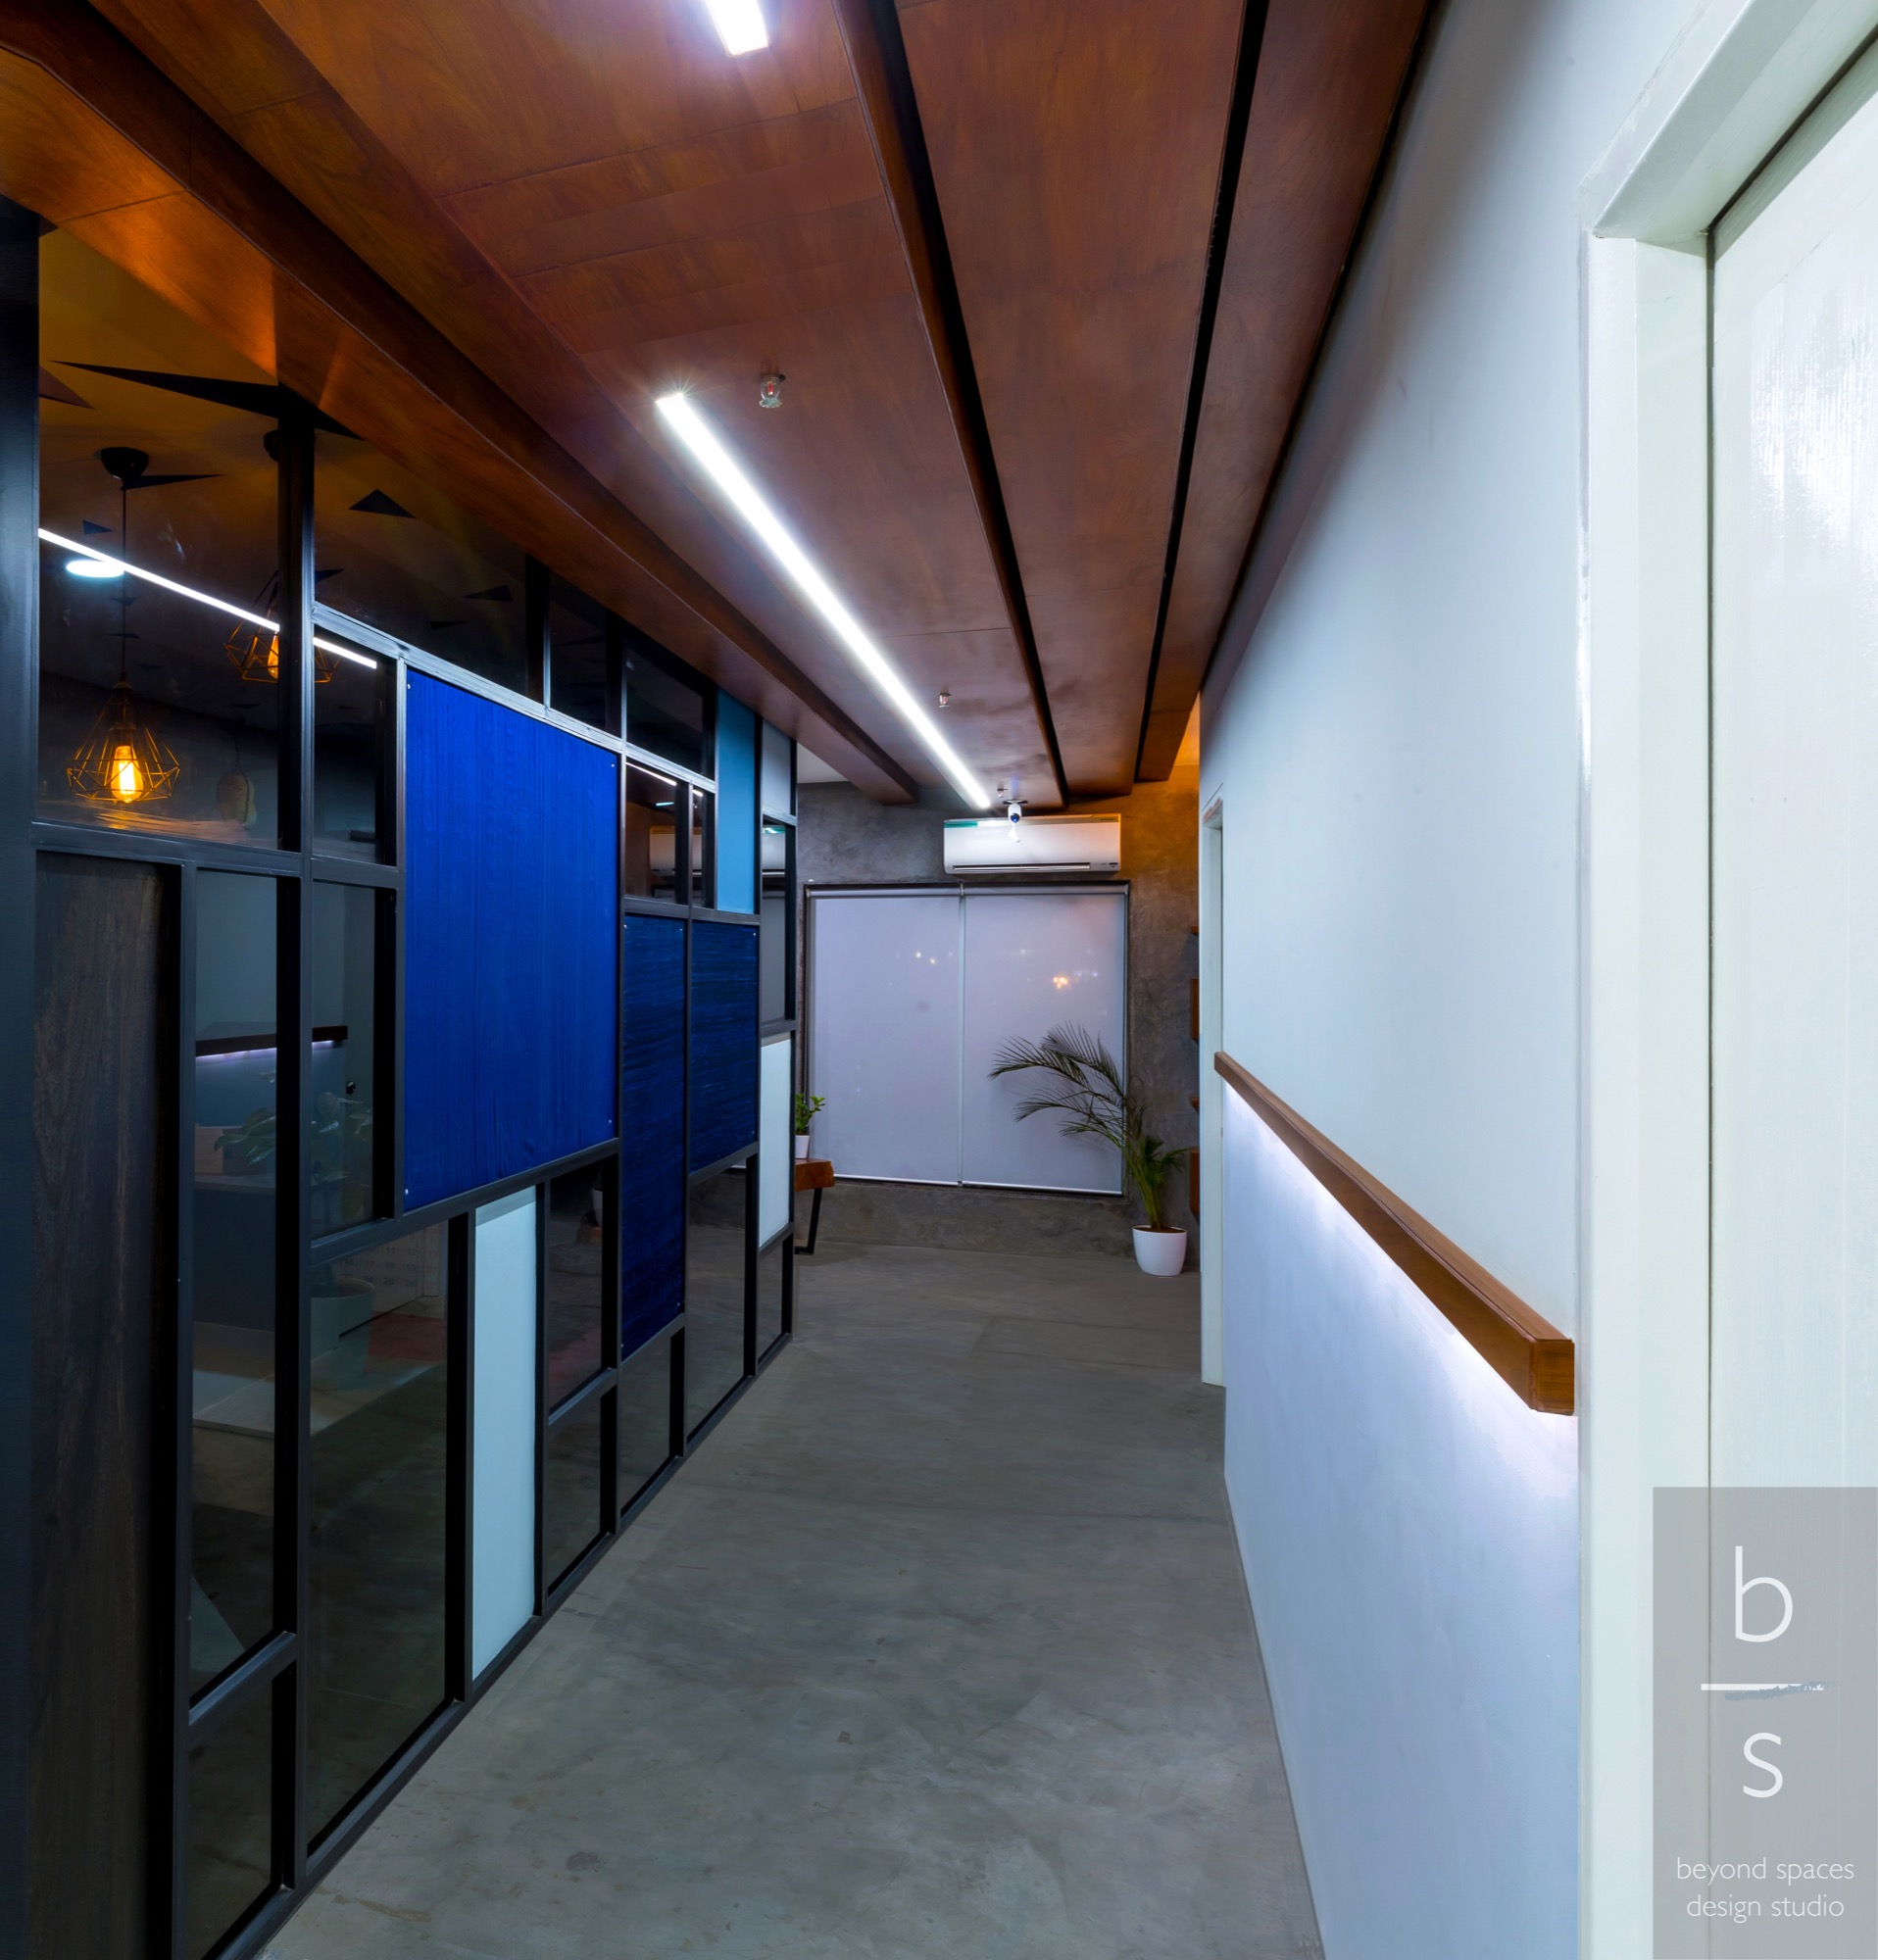 Nava Clinic at Hyderabad, An Earthy Oasis of Wellness, designed by Beyond Spaces Design Studio 32